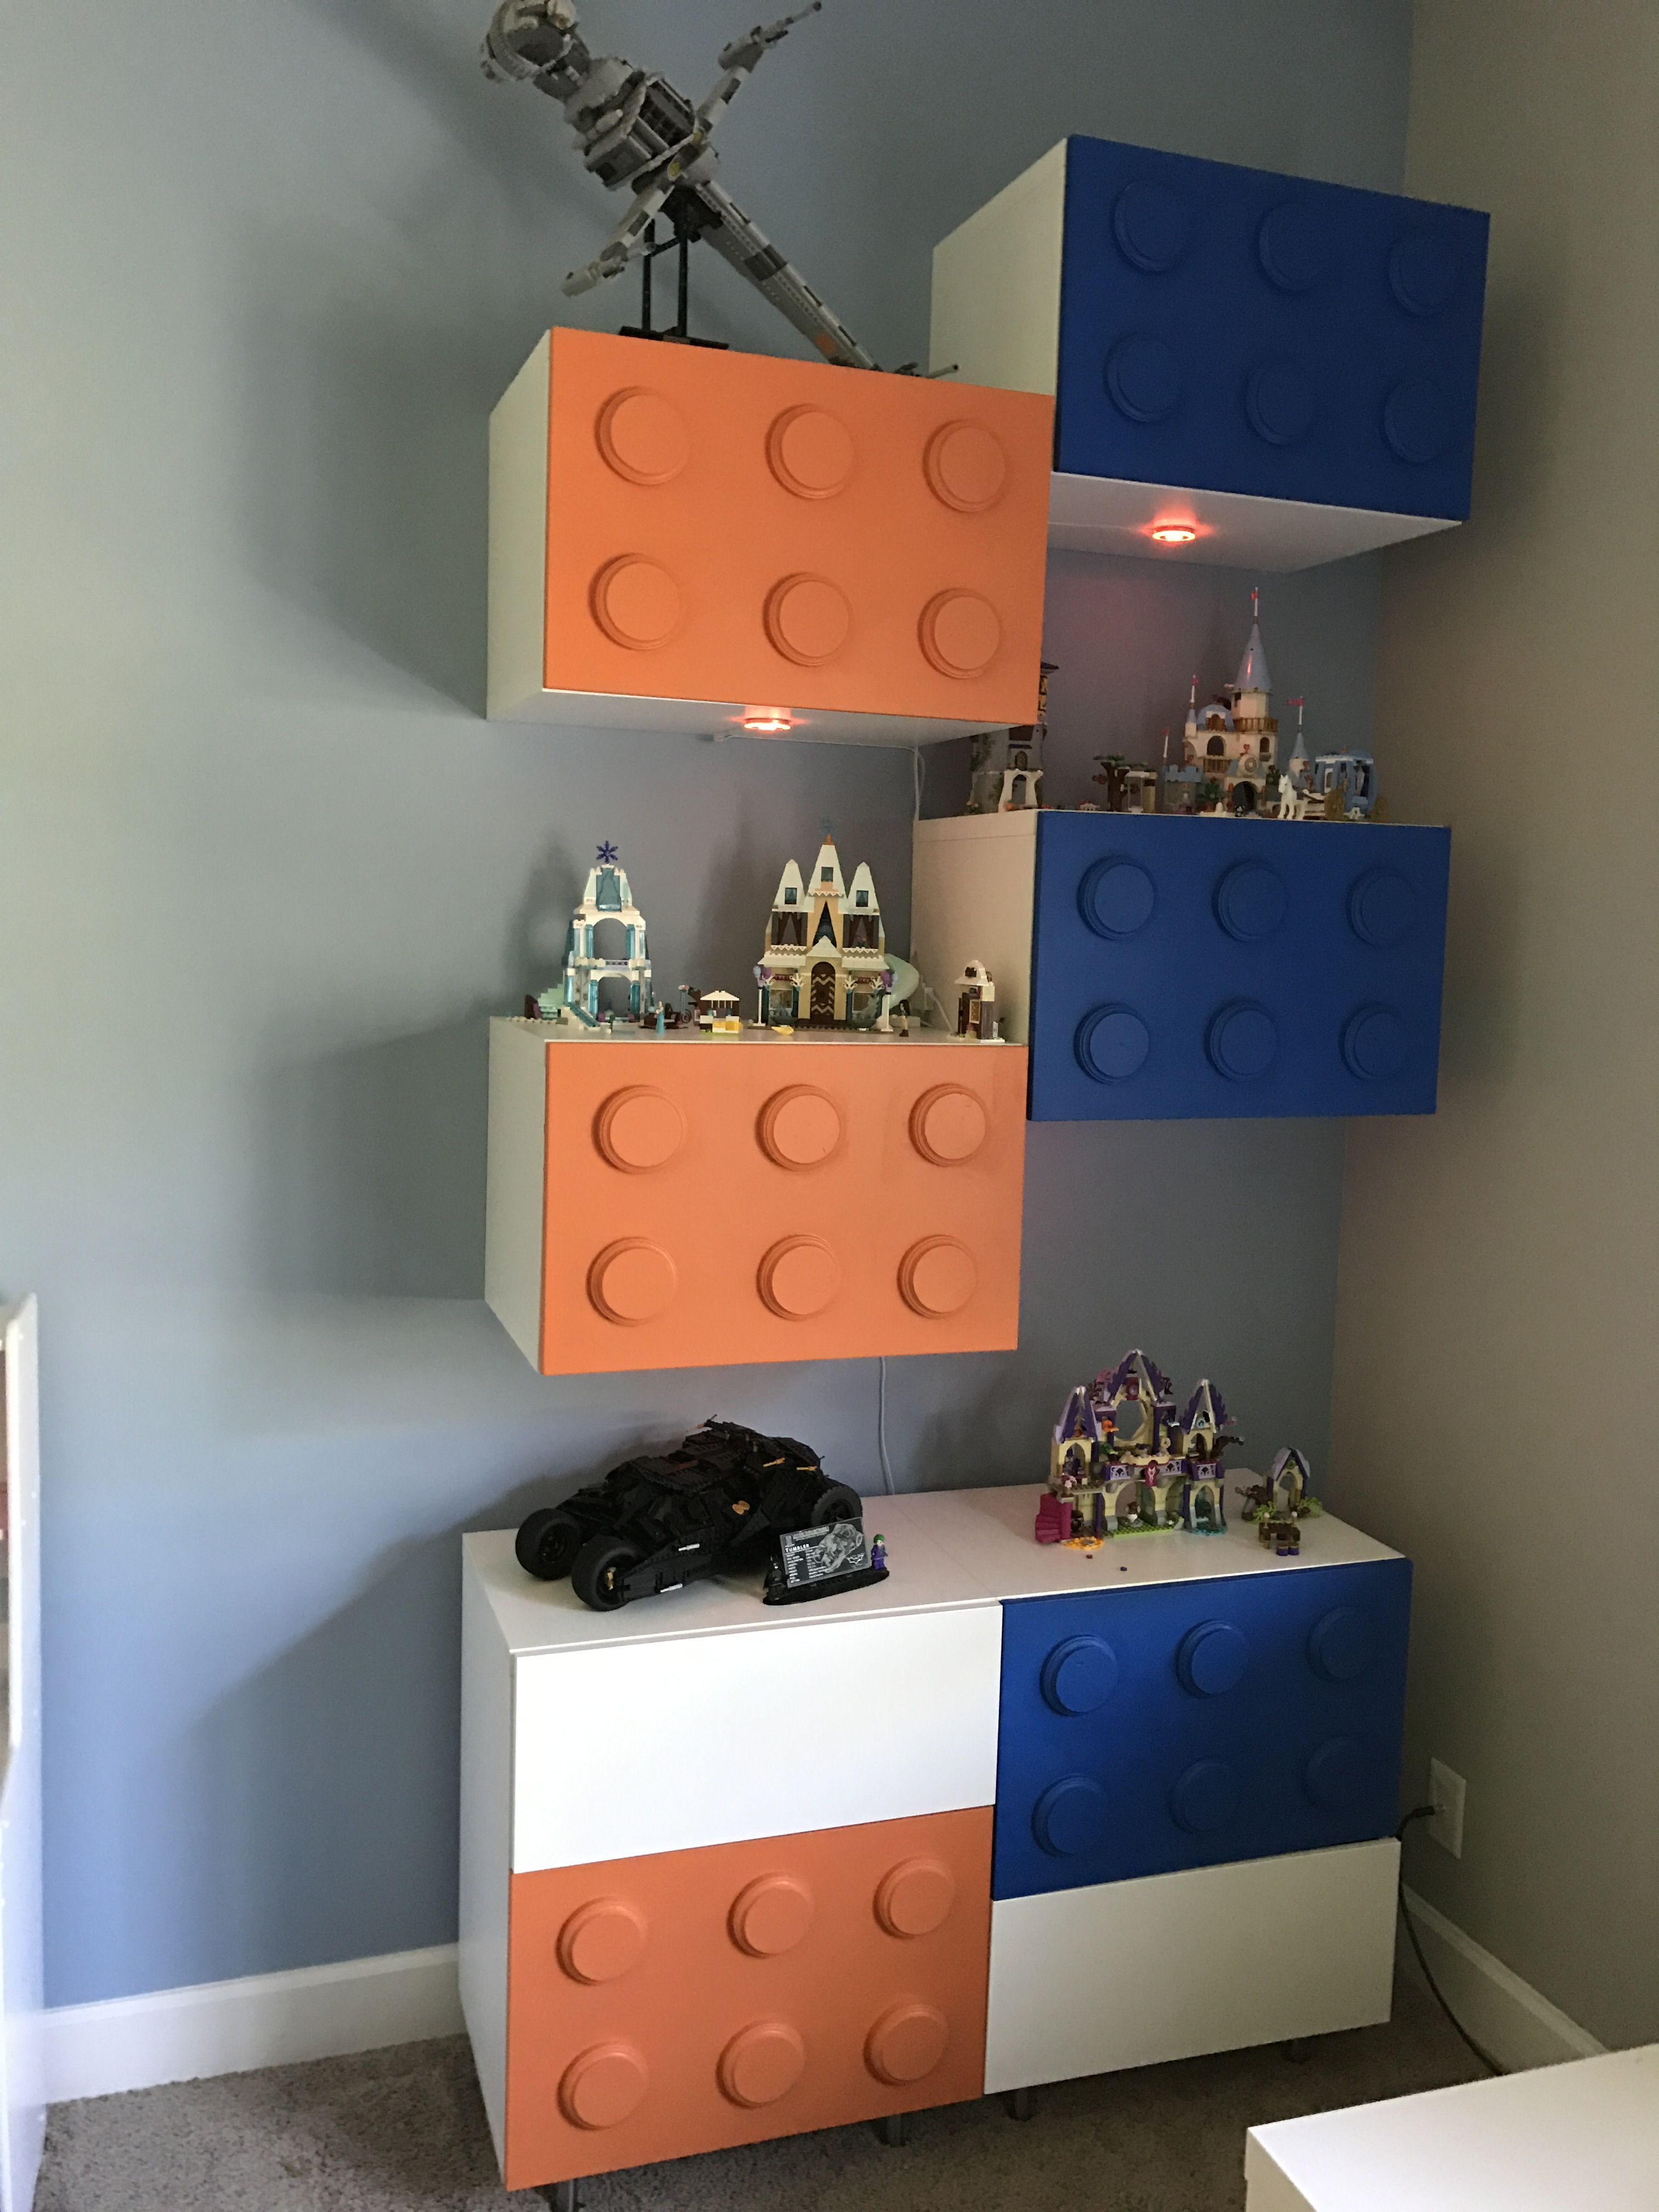 Lego Bedroom Decorating Ideas: Lego Wall From Besta Shelves, Diode Lights, And Captiva